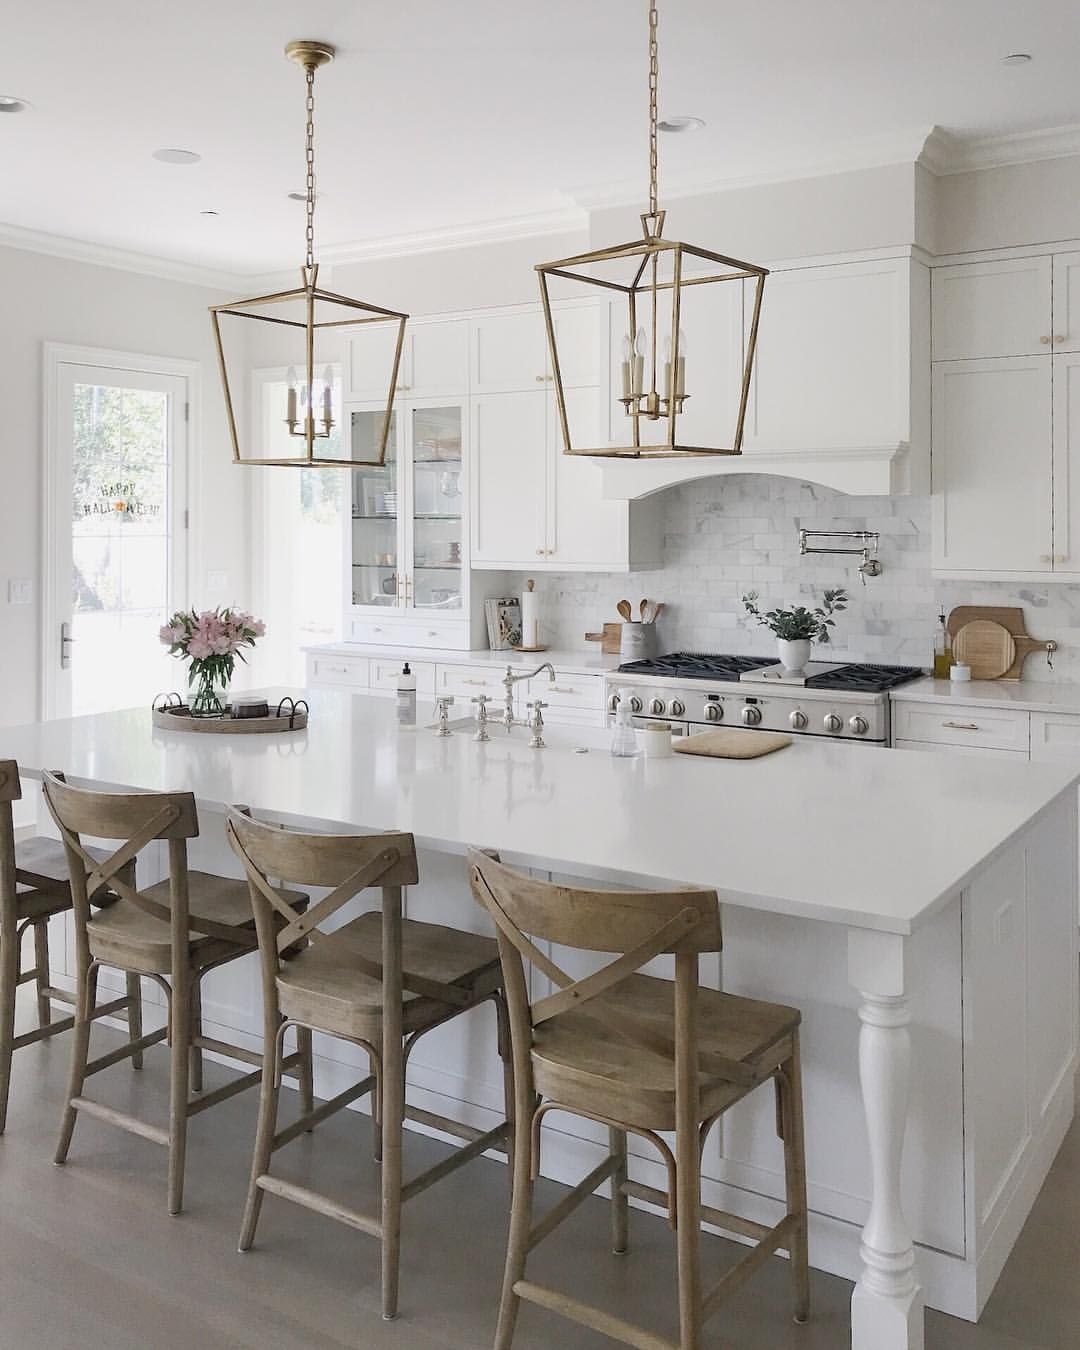 Pin by Kristie Rainey on DH - Dining | Farmhouse kitchen ...